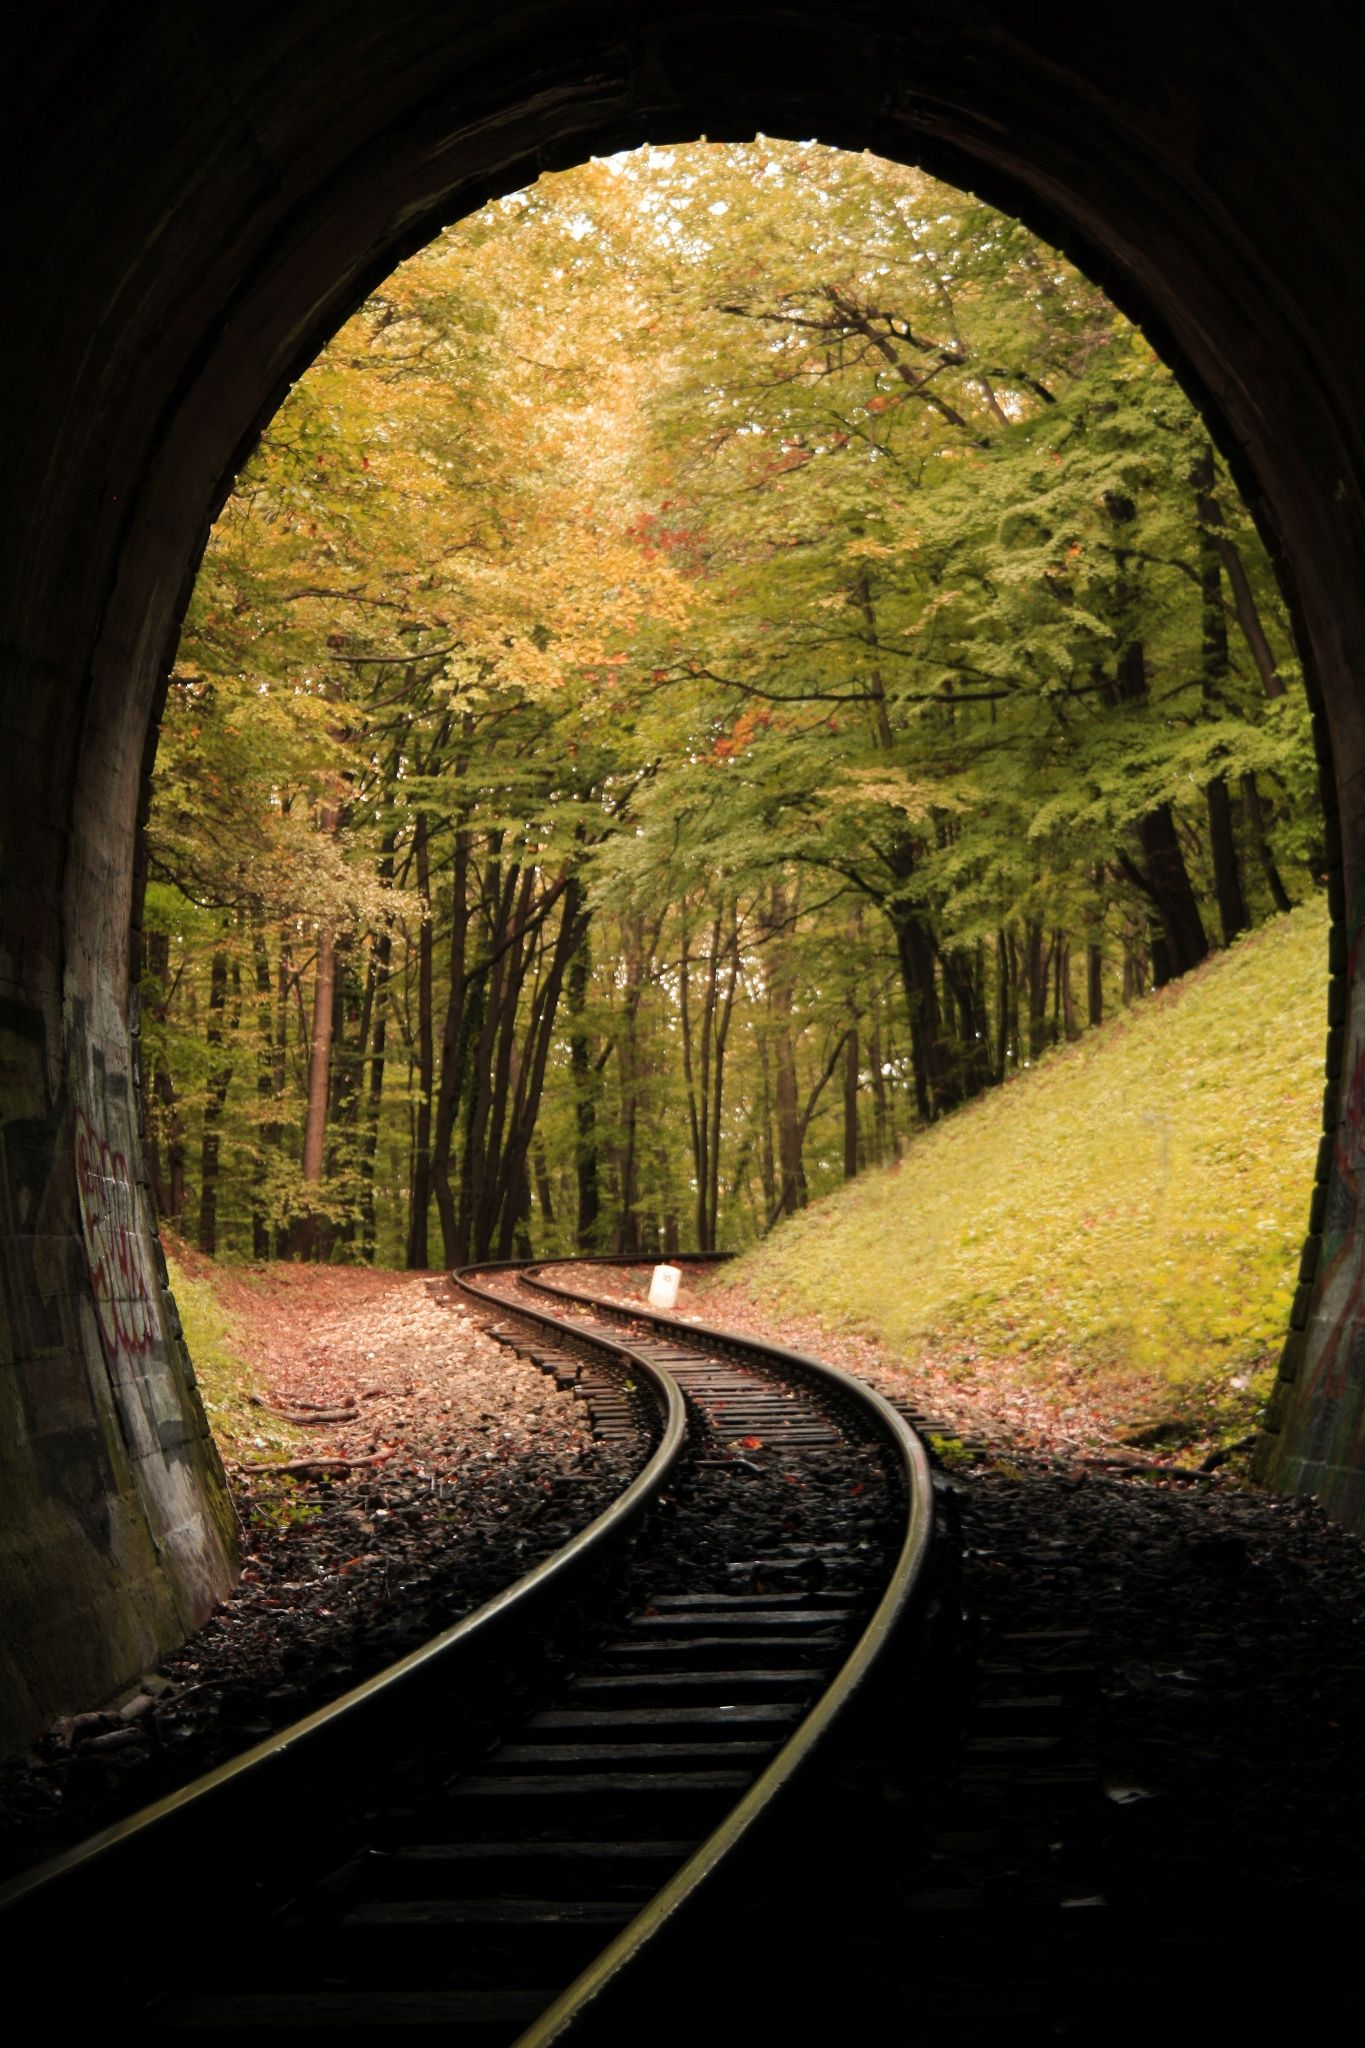 Tunnel Autumn By Zoltan Tujner 500px Train Tunnel Train Tracks Scenery Pictures Nature railway rails stone arch trees